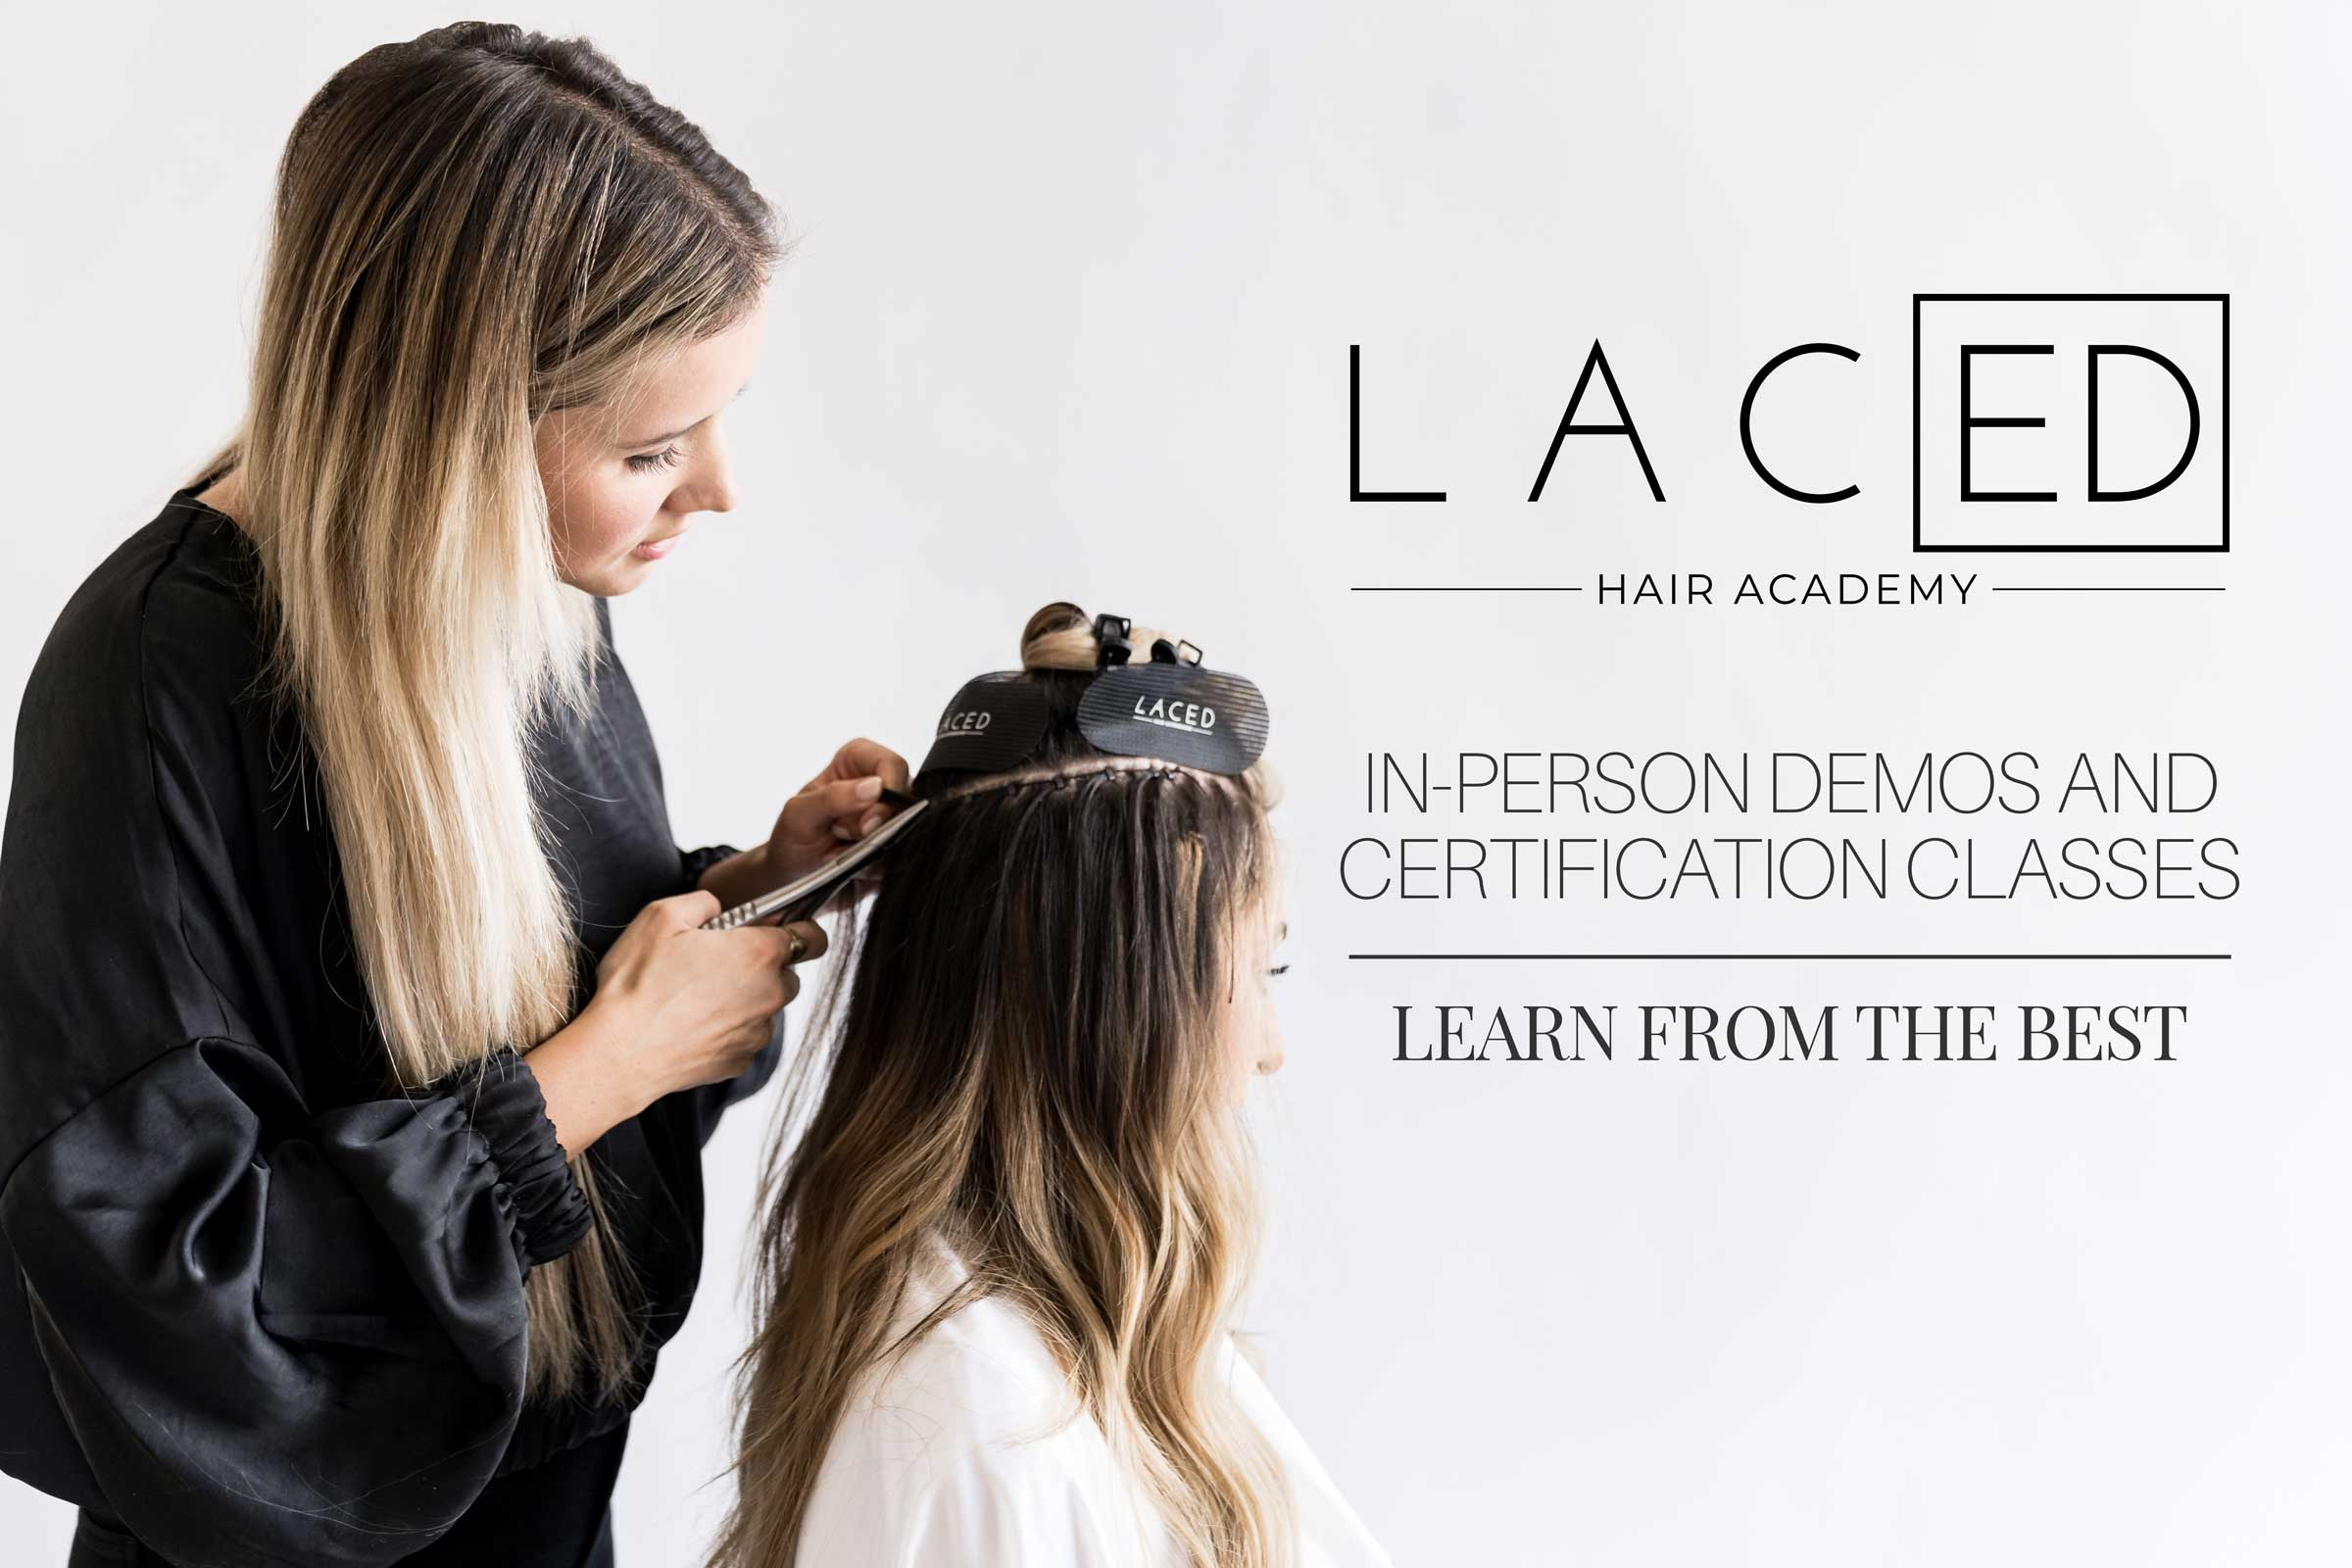 Laced Academy   Find An In-Person Class Near You